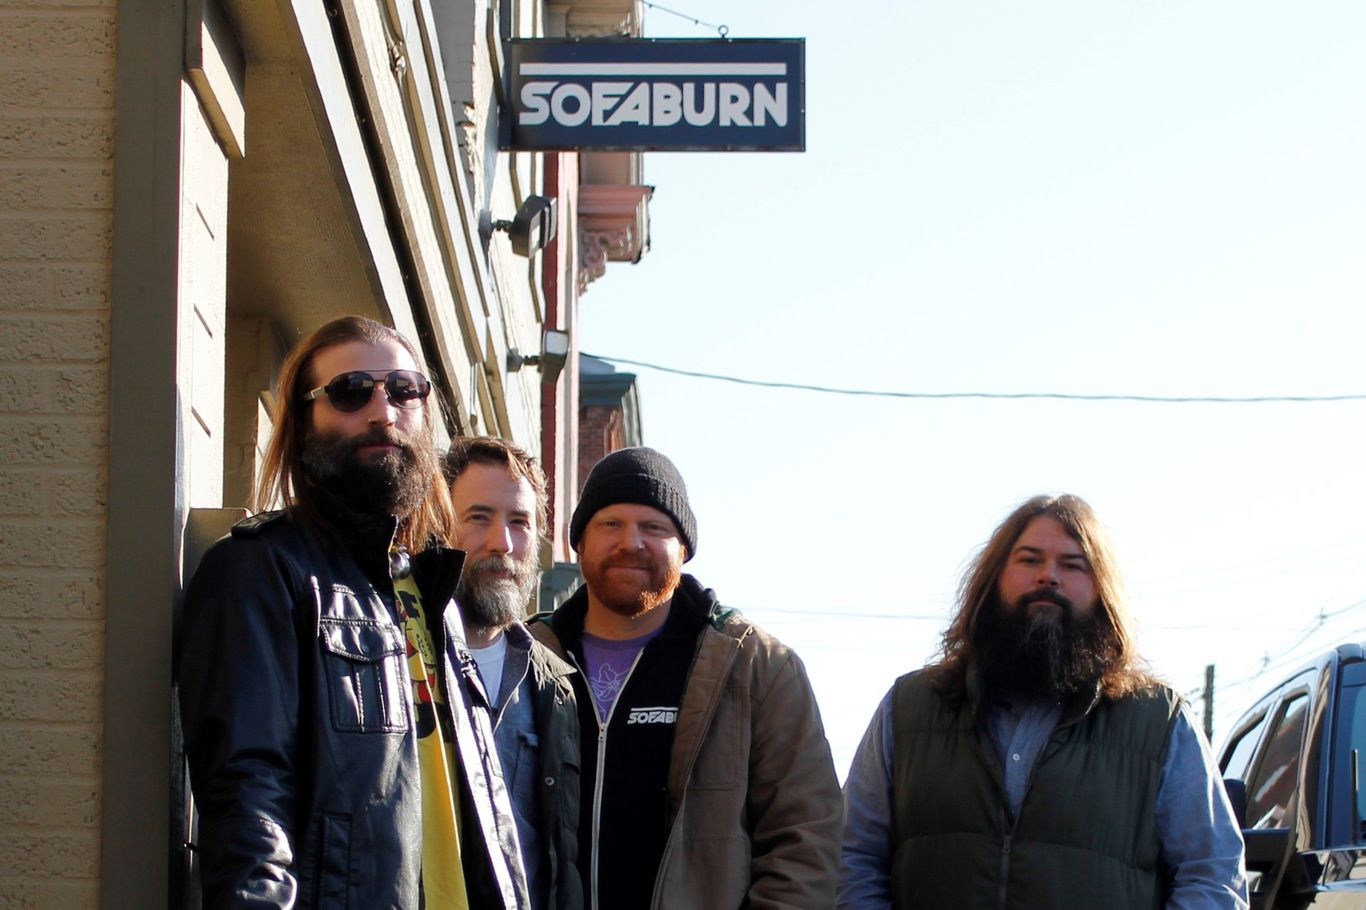 Chris Mueller, founder of SofaBurn (third from the left)